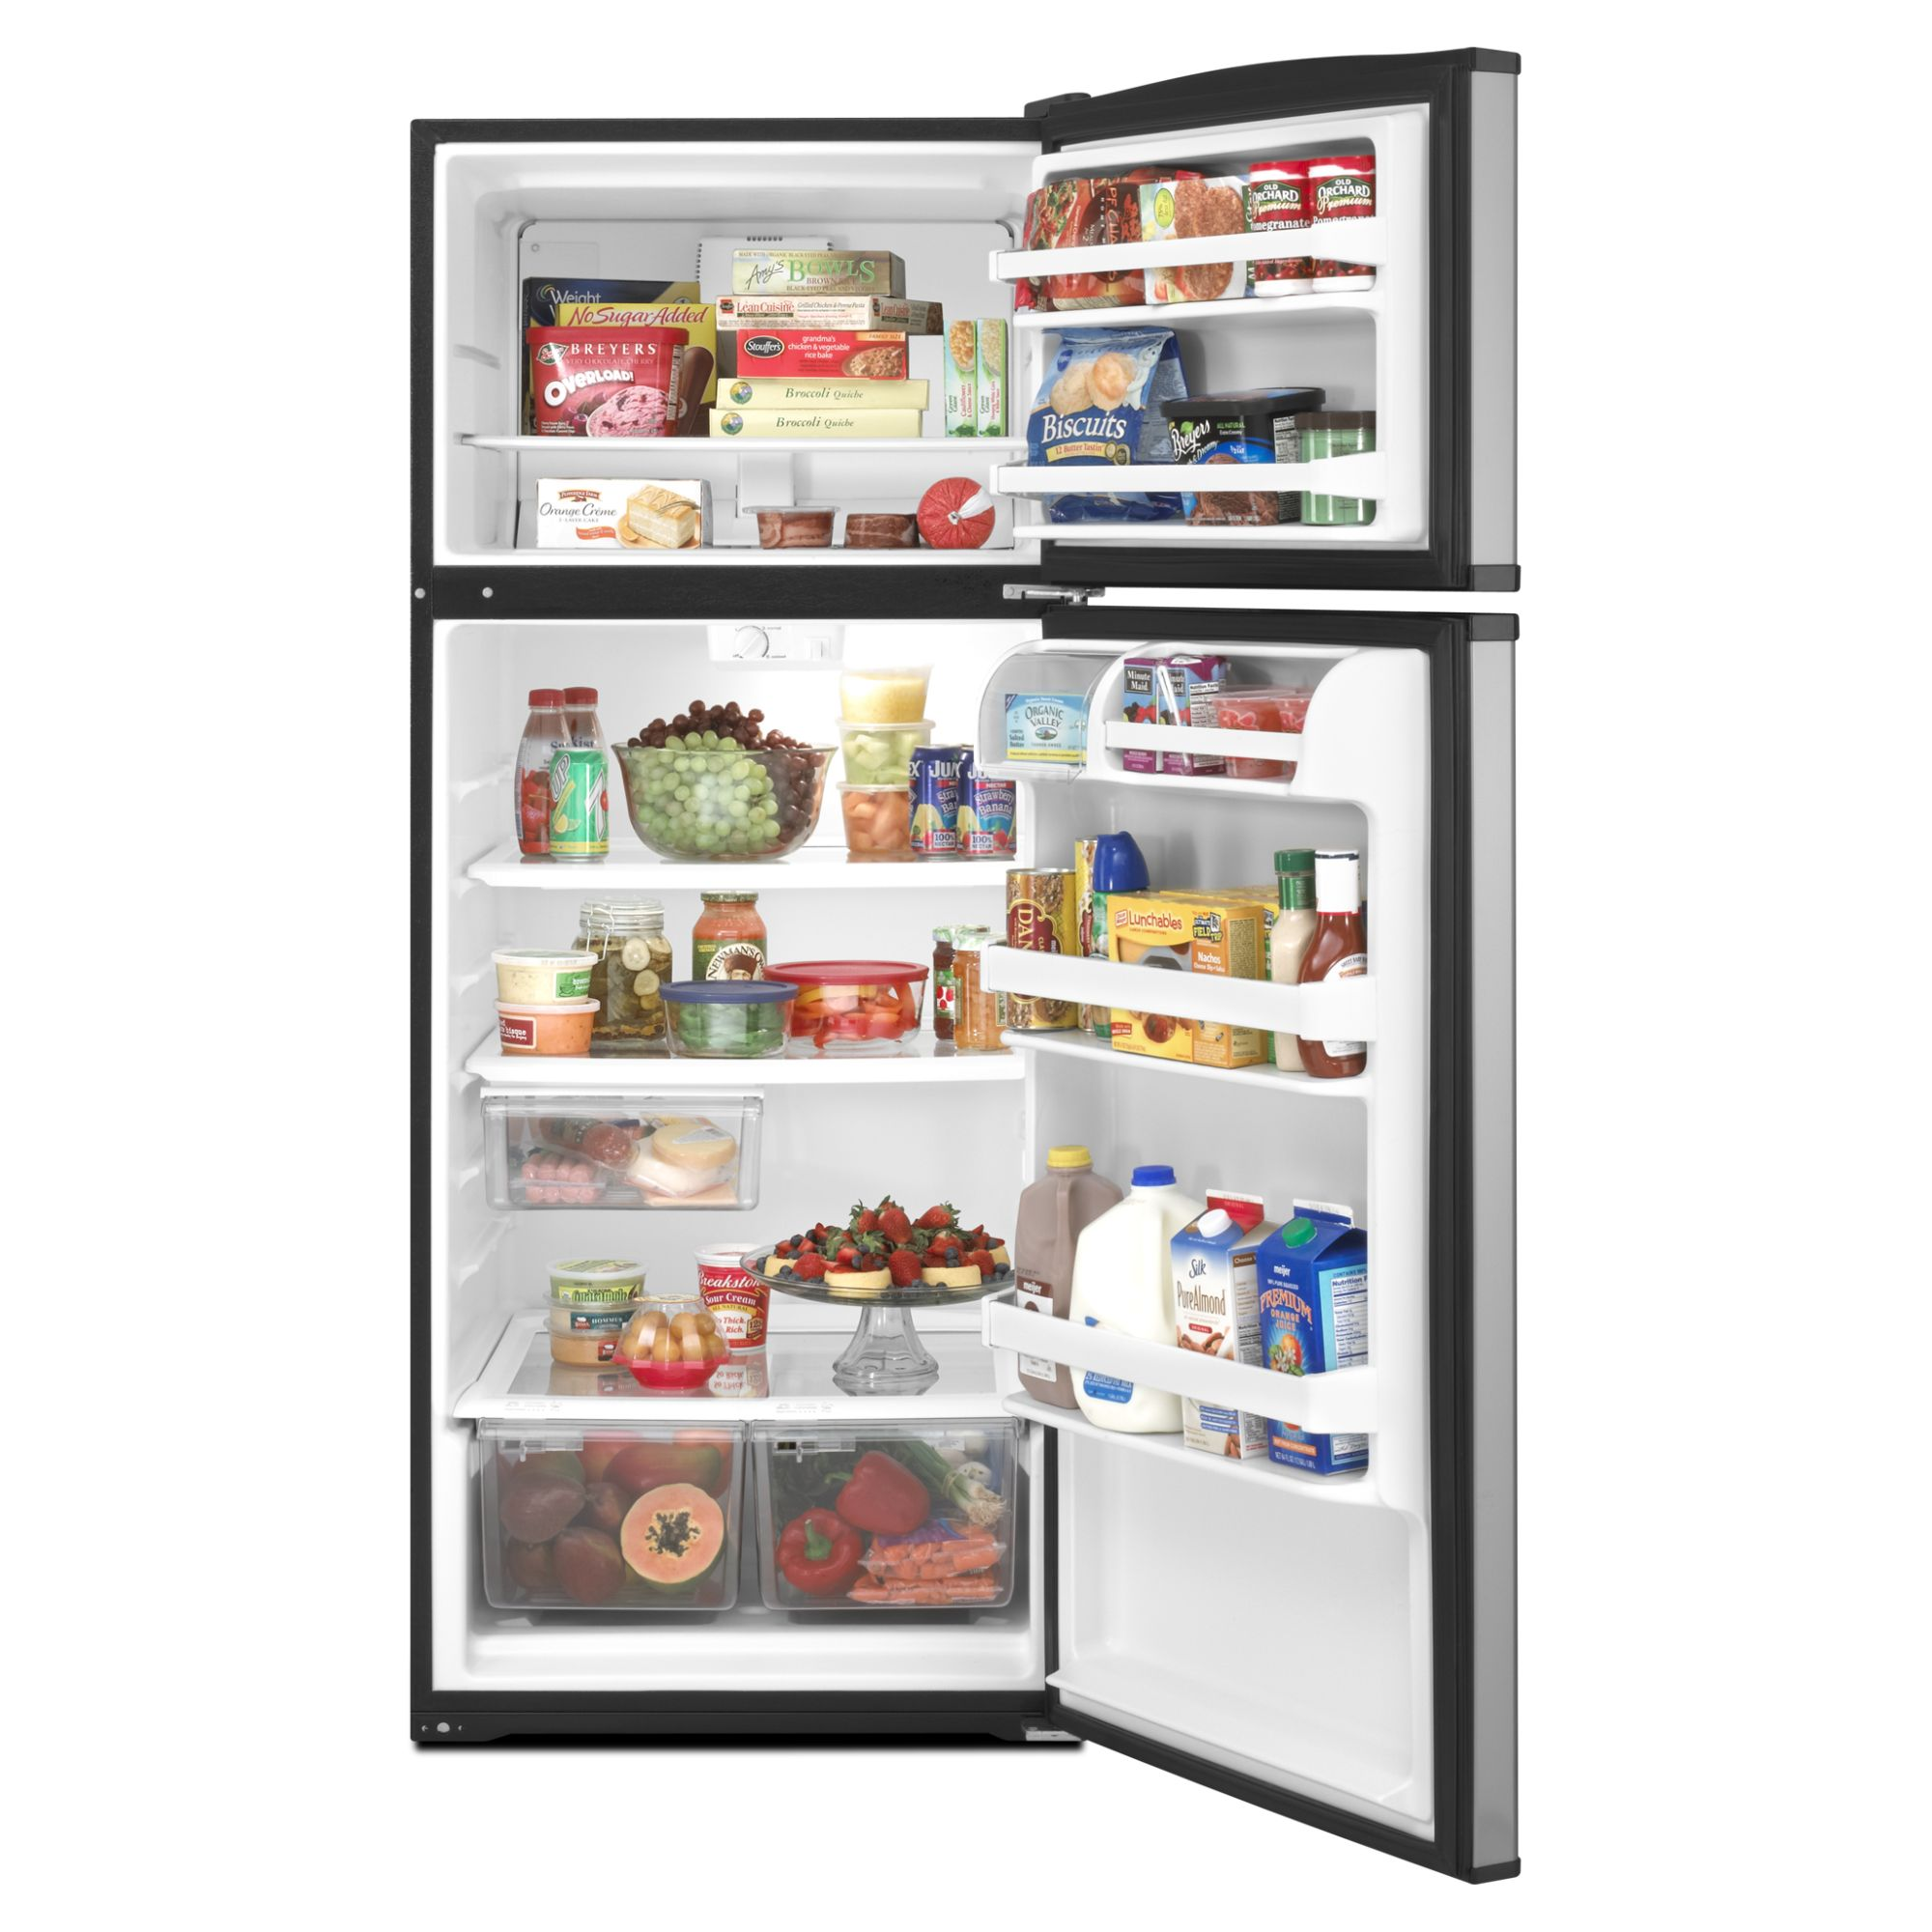 Amana 17.6 cu. ft. Top-Freezer Refrigerator  -  Stainless Steel Look